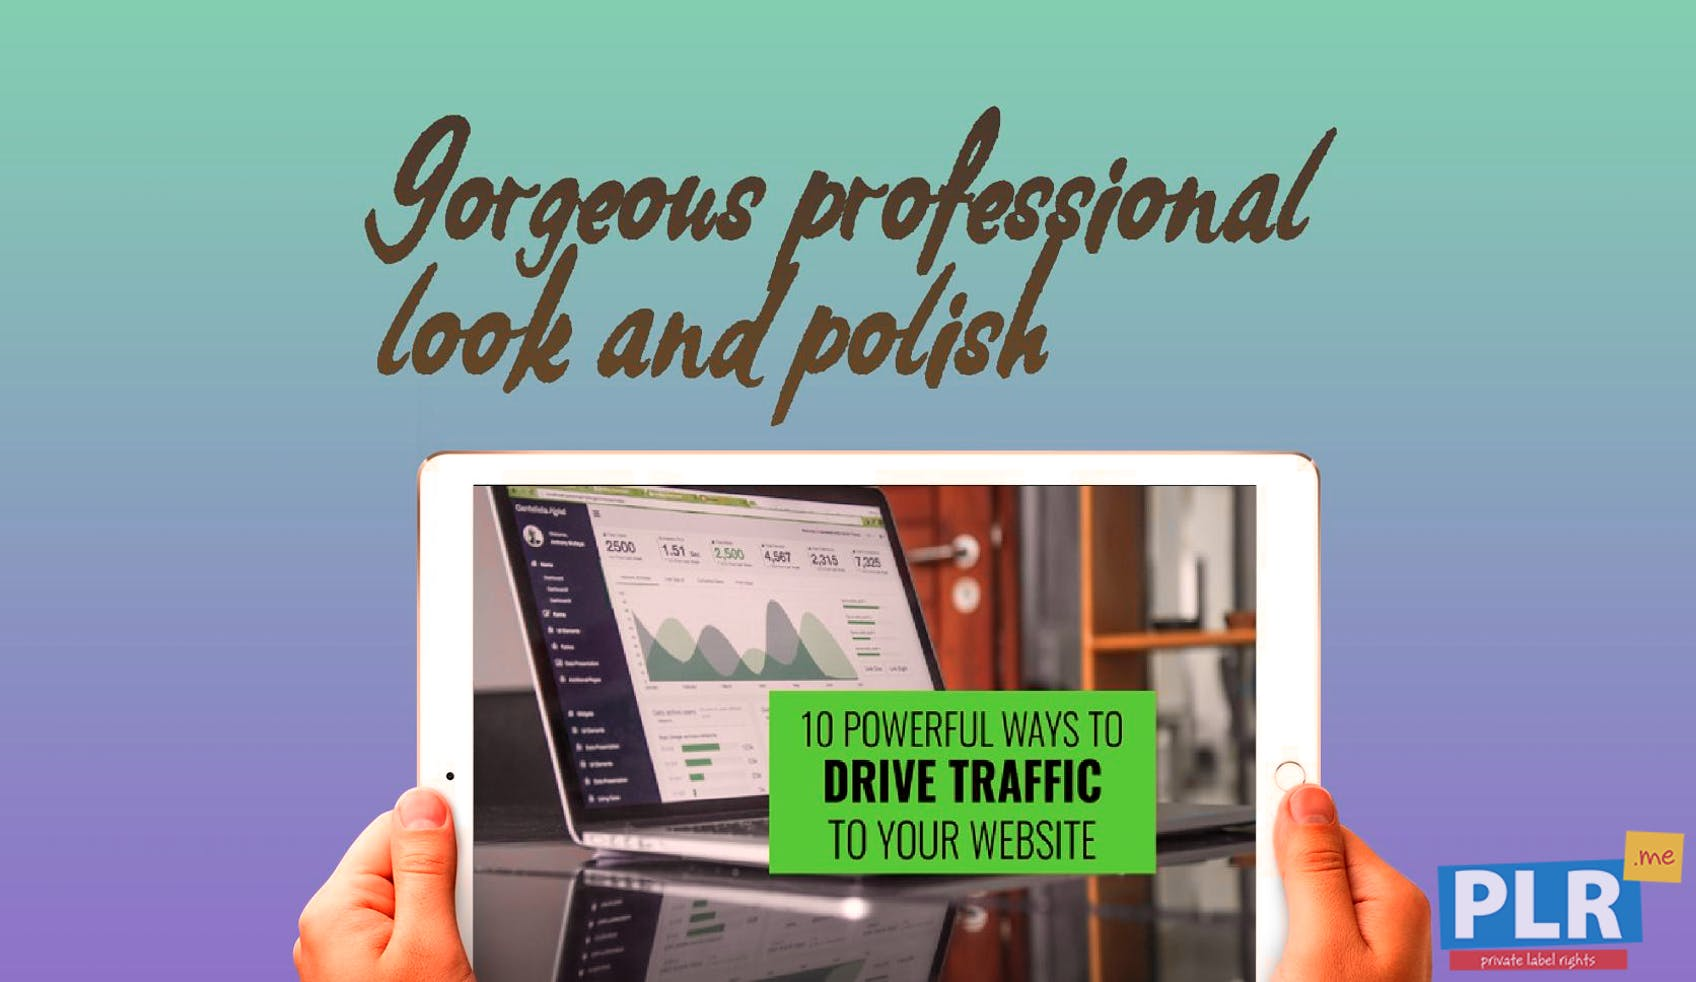 10 Powerful Ways To Drive Traffic To Your Website - Slide Deck